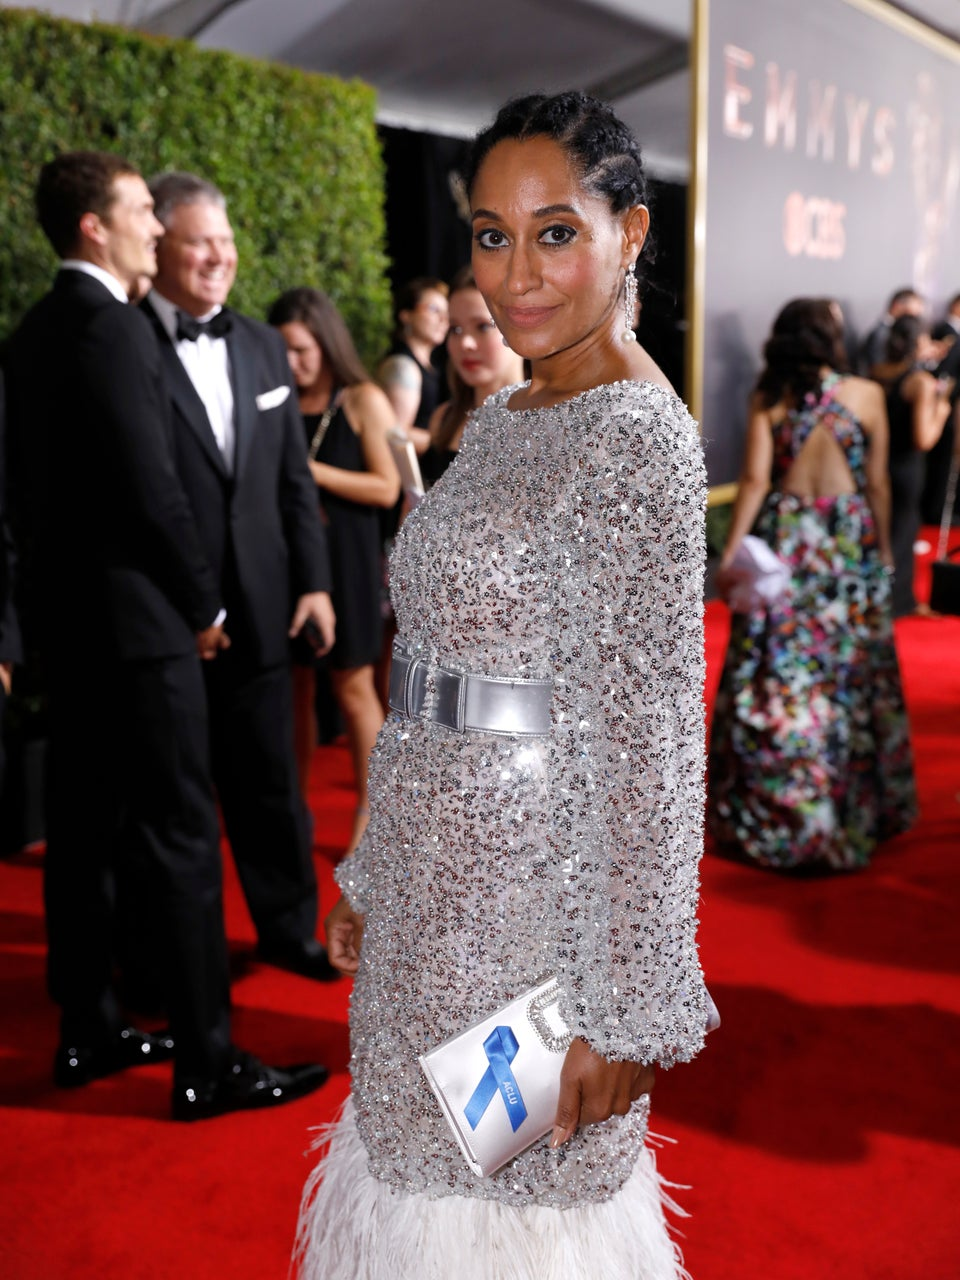 It Took Over 1,300 Hours To Make This Emmys Red Carpet Dress